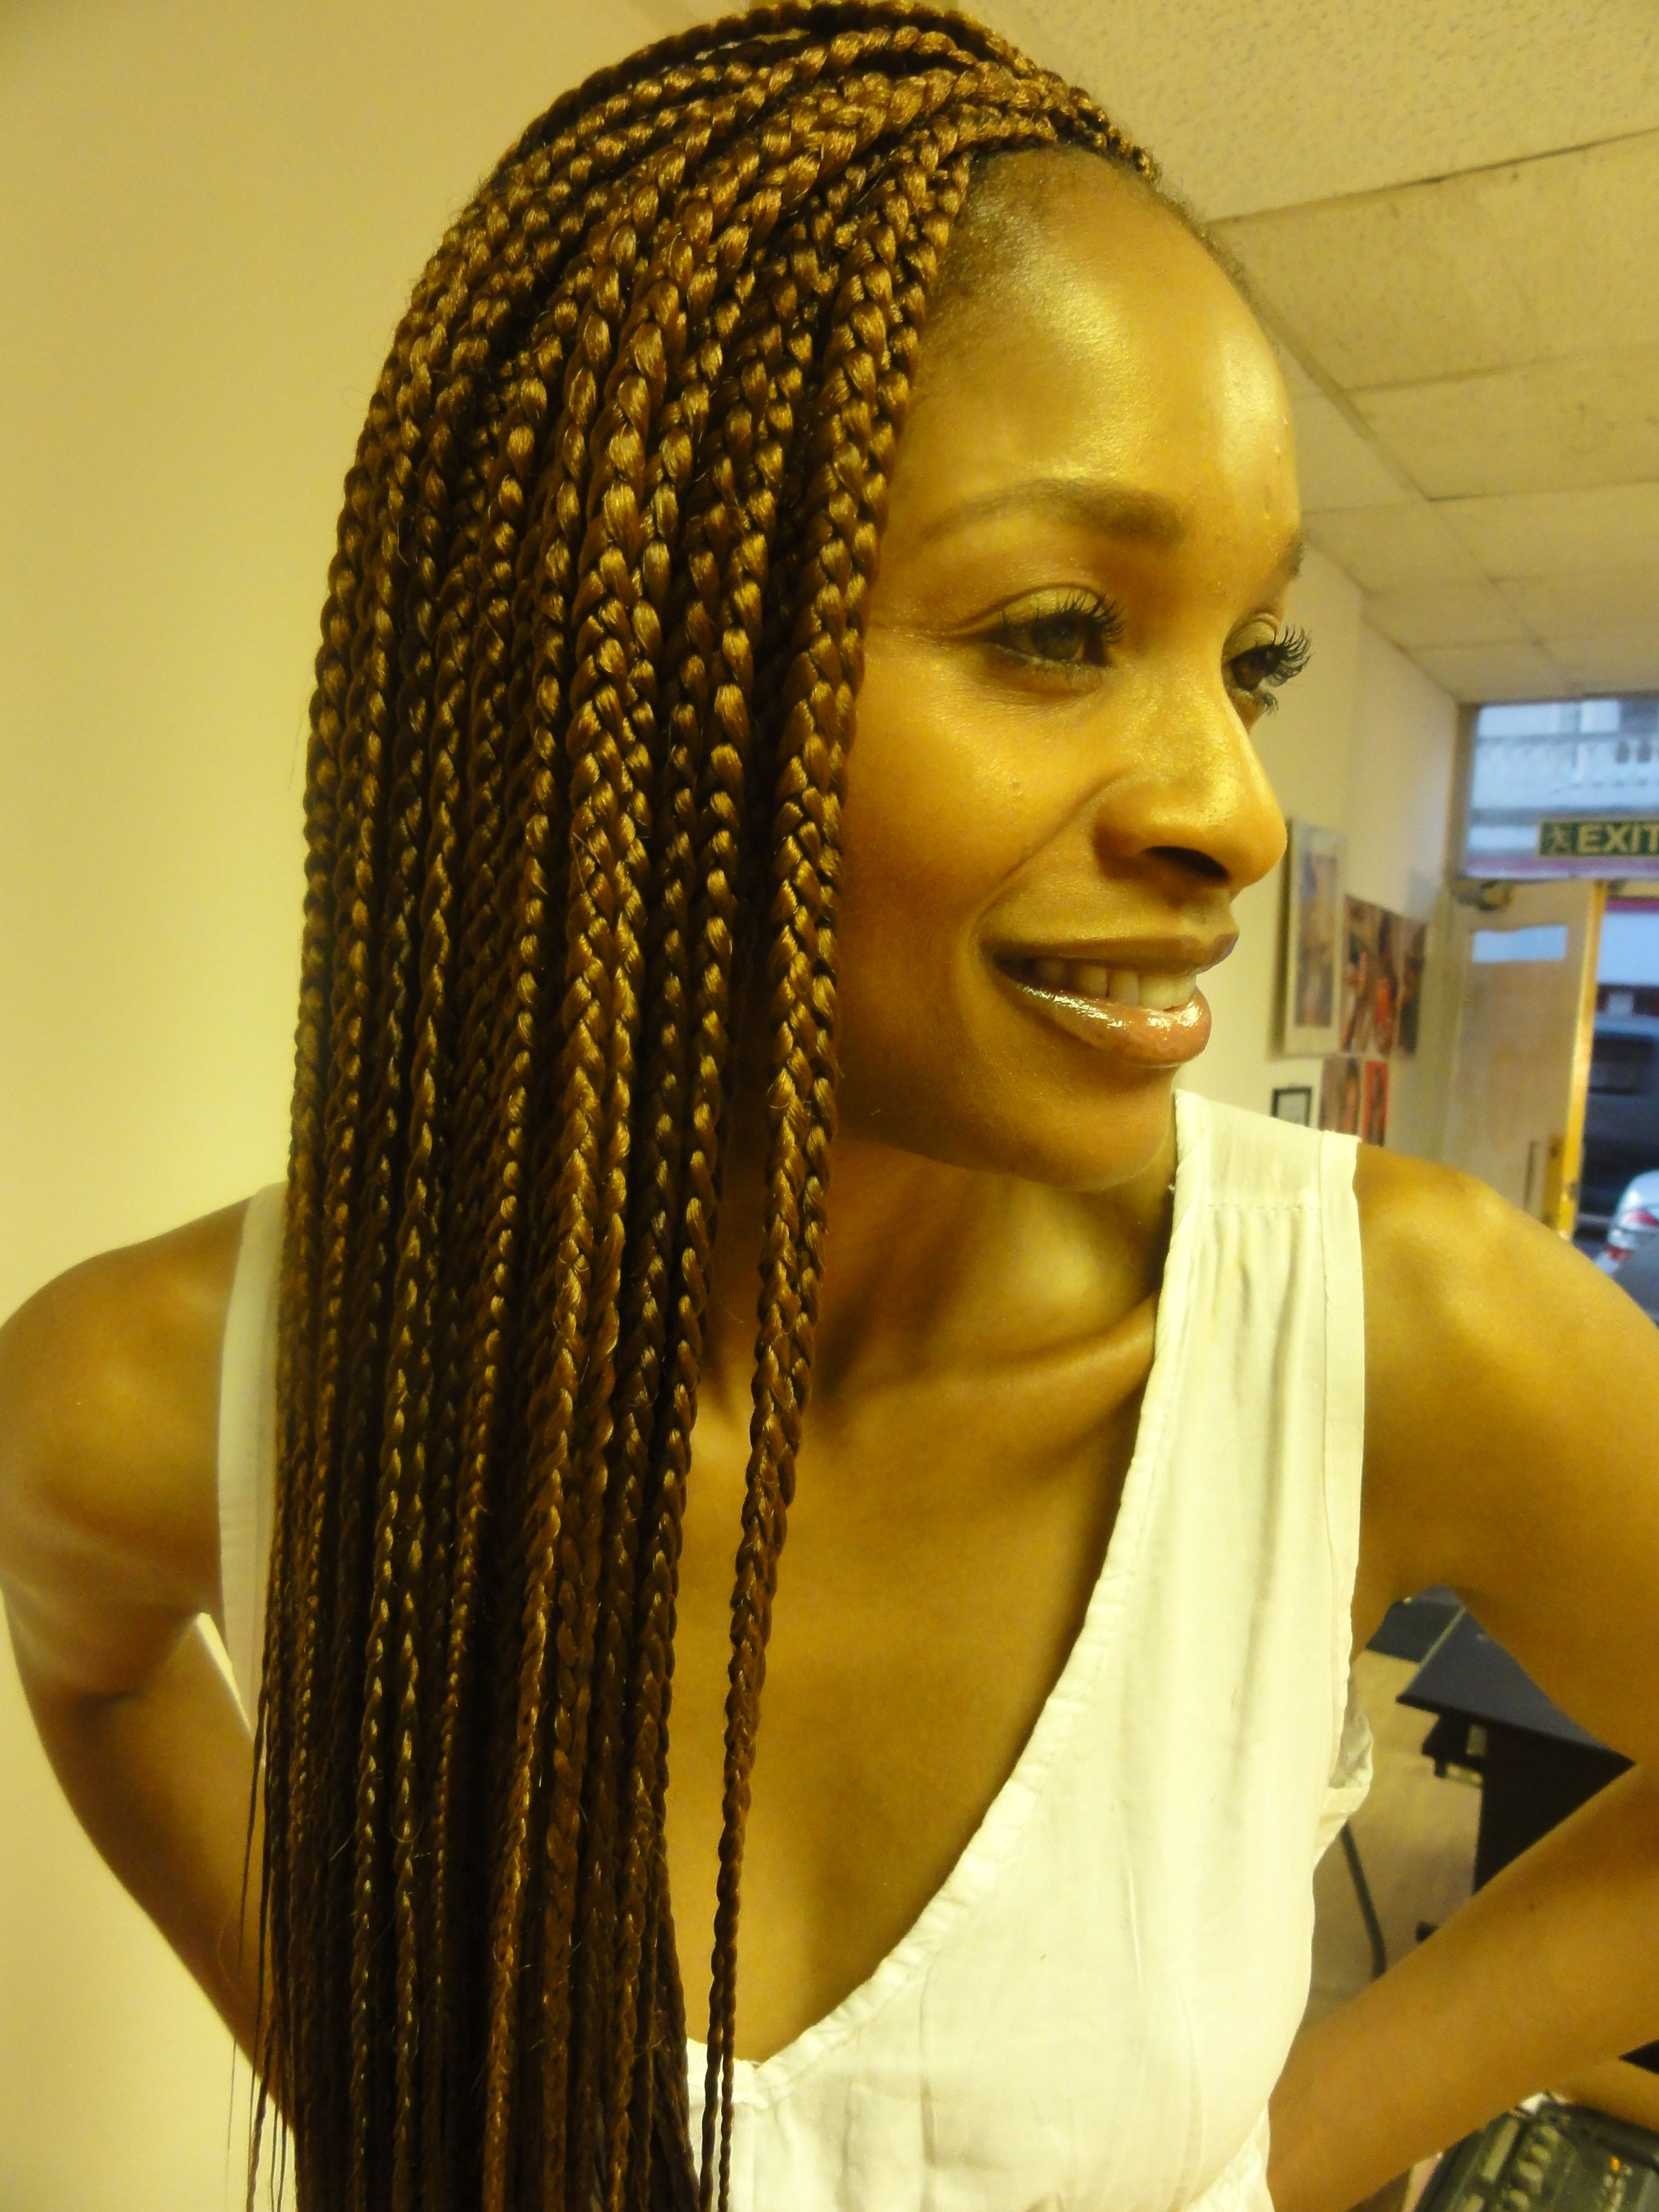 Sensational 1000 Images About Hair On Pinterest Box Braids Braids And Hairstyle Inspiration Daily Dogsangcom